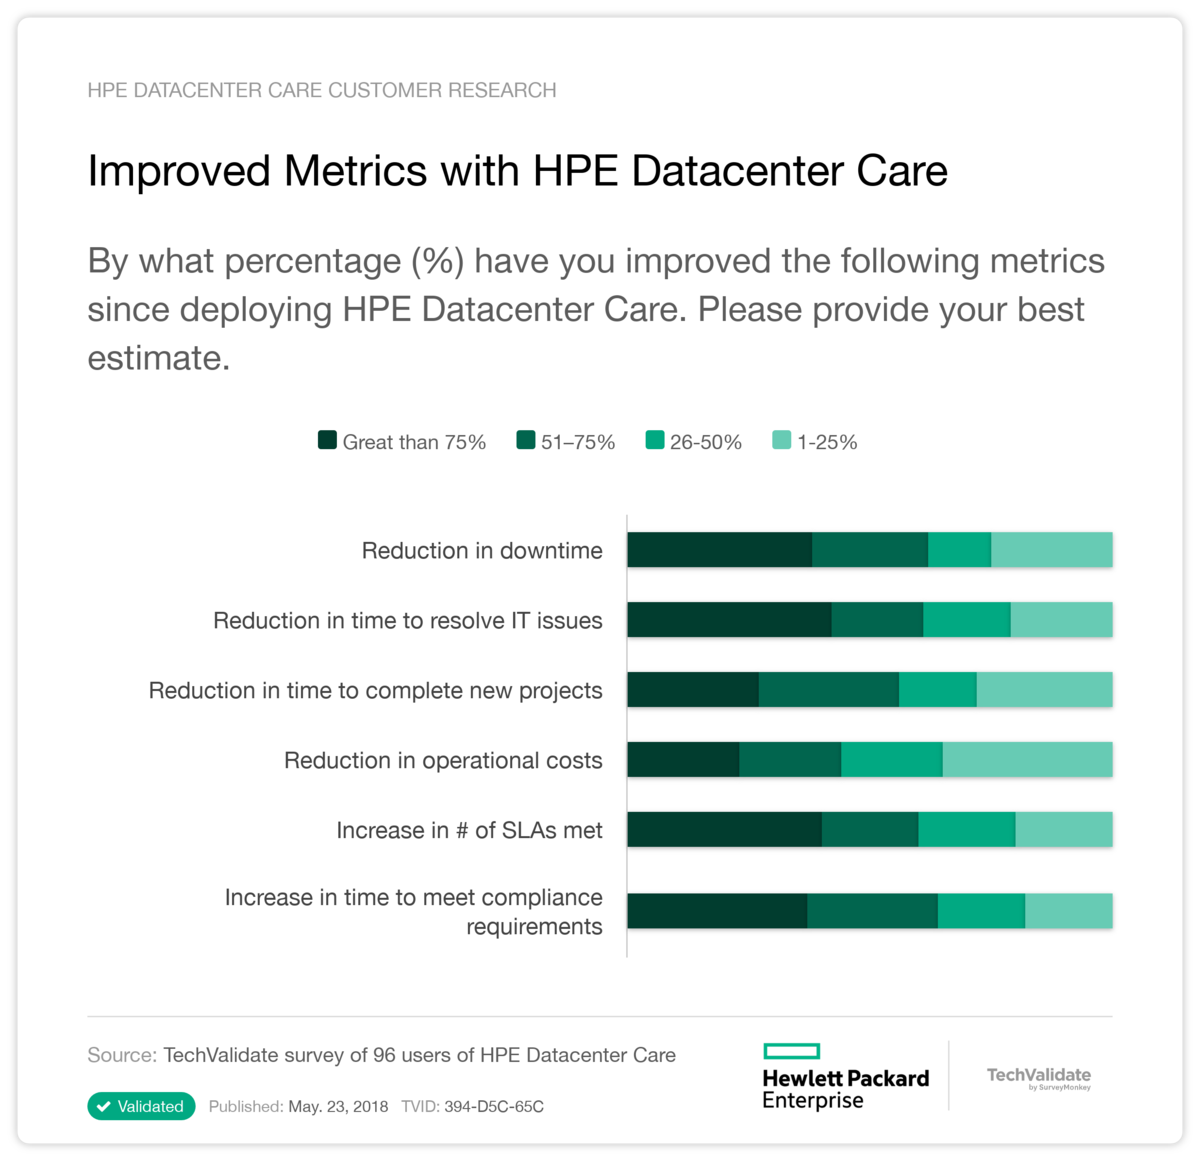 Improved Metrics with HPE Datacenter Care